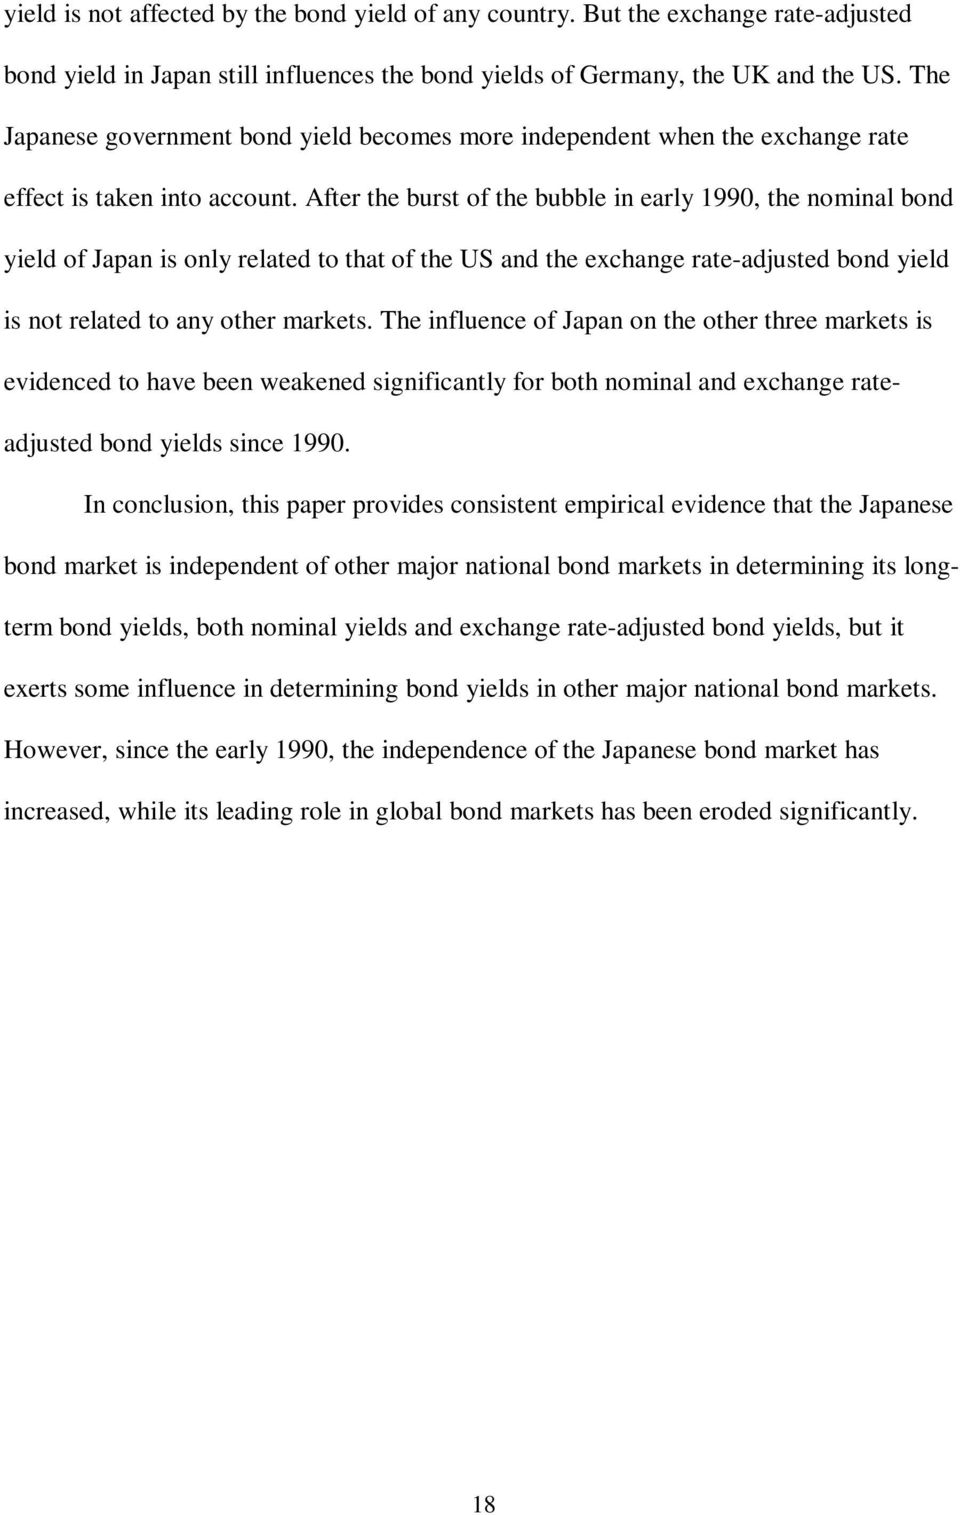 After the burst of the bubble in early 1990, the nominal bond yield of Japan is only related to that of the US and the exchange rate-adjusted bond yield is not related to any other markets.